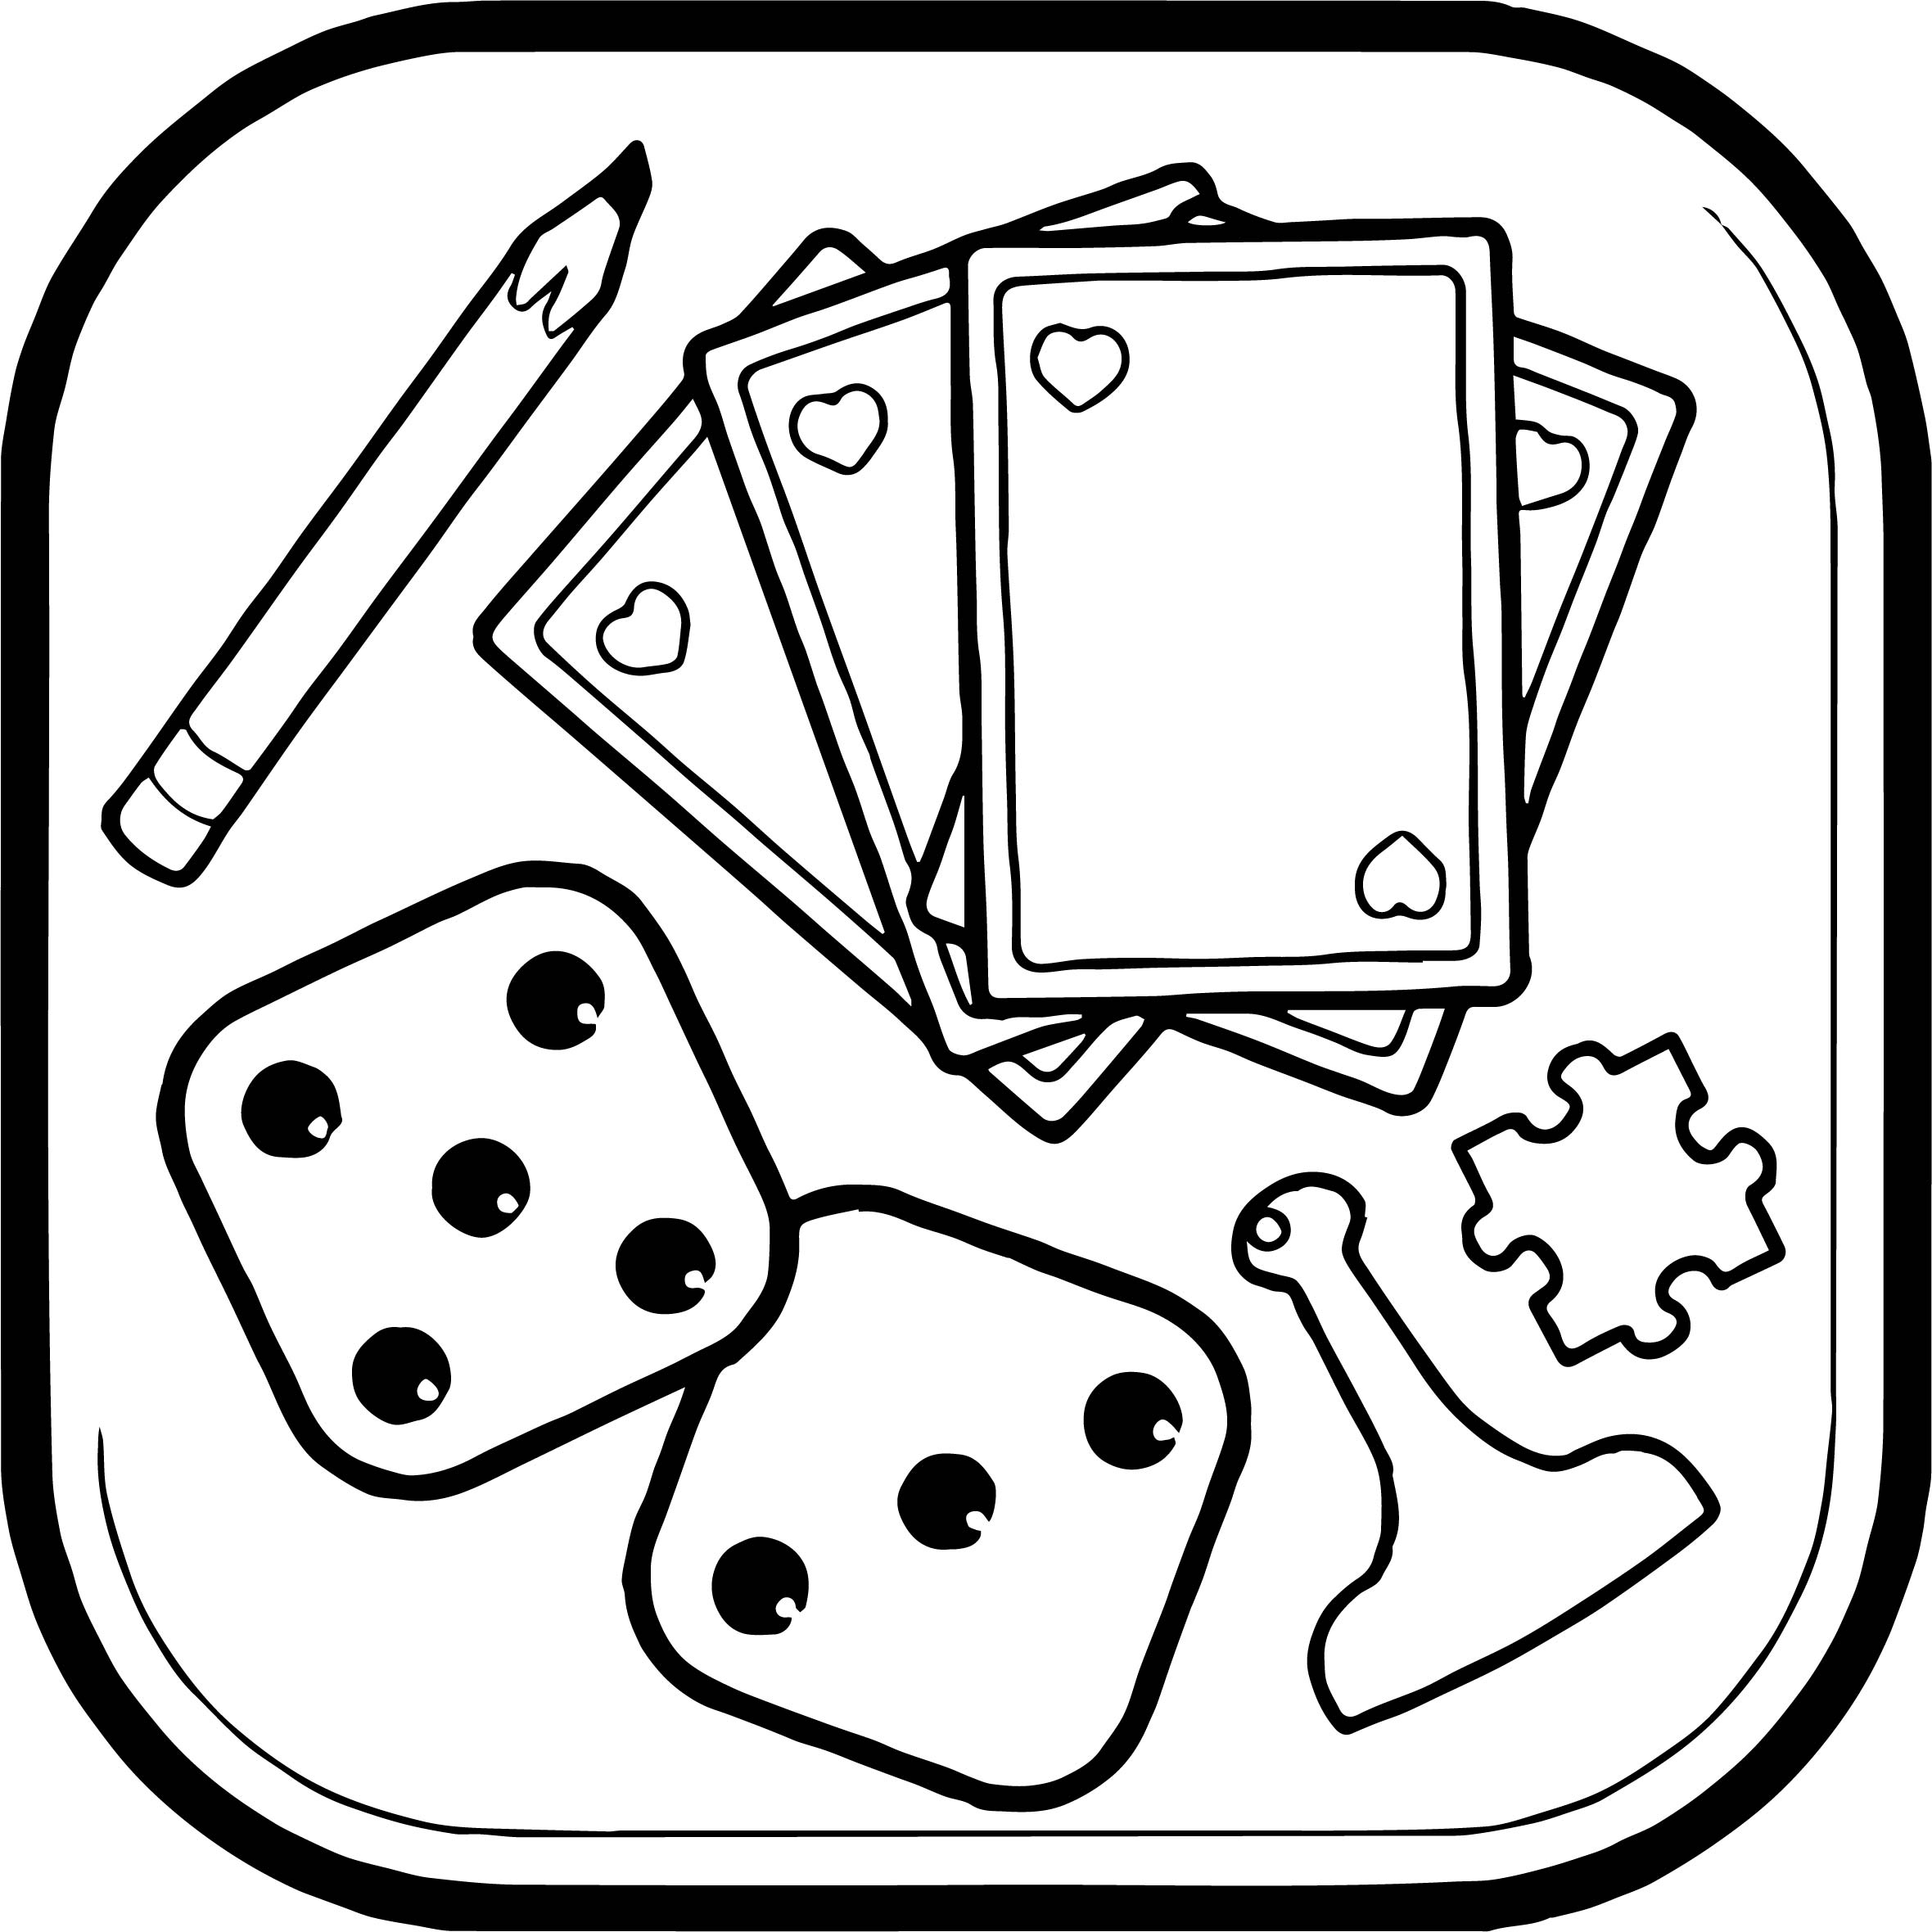 Board object coloring page for Coloring pages games